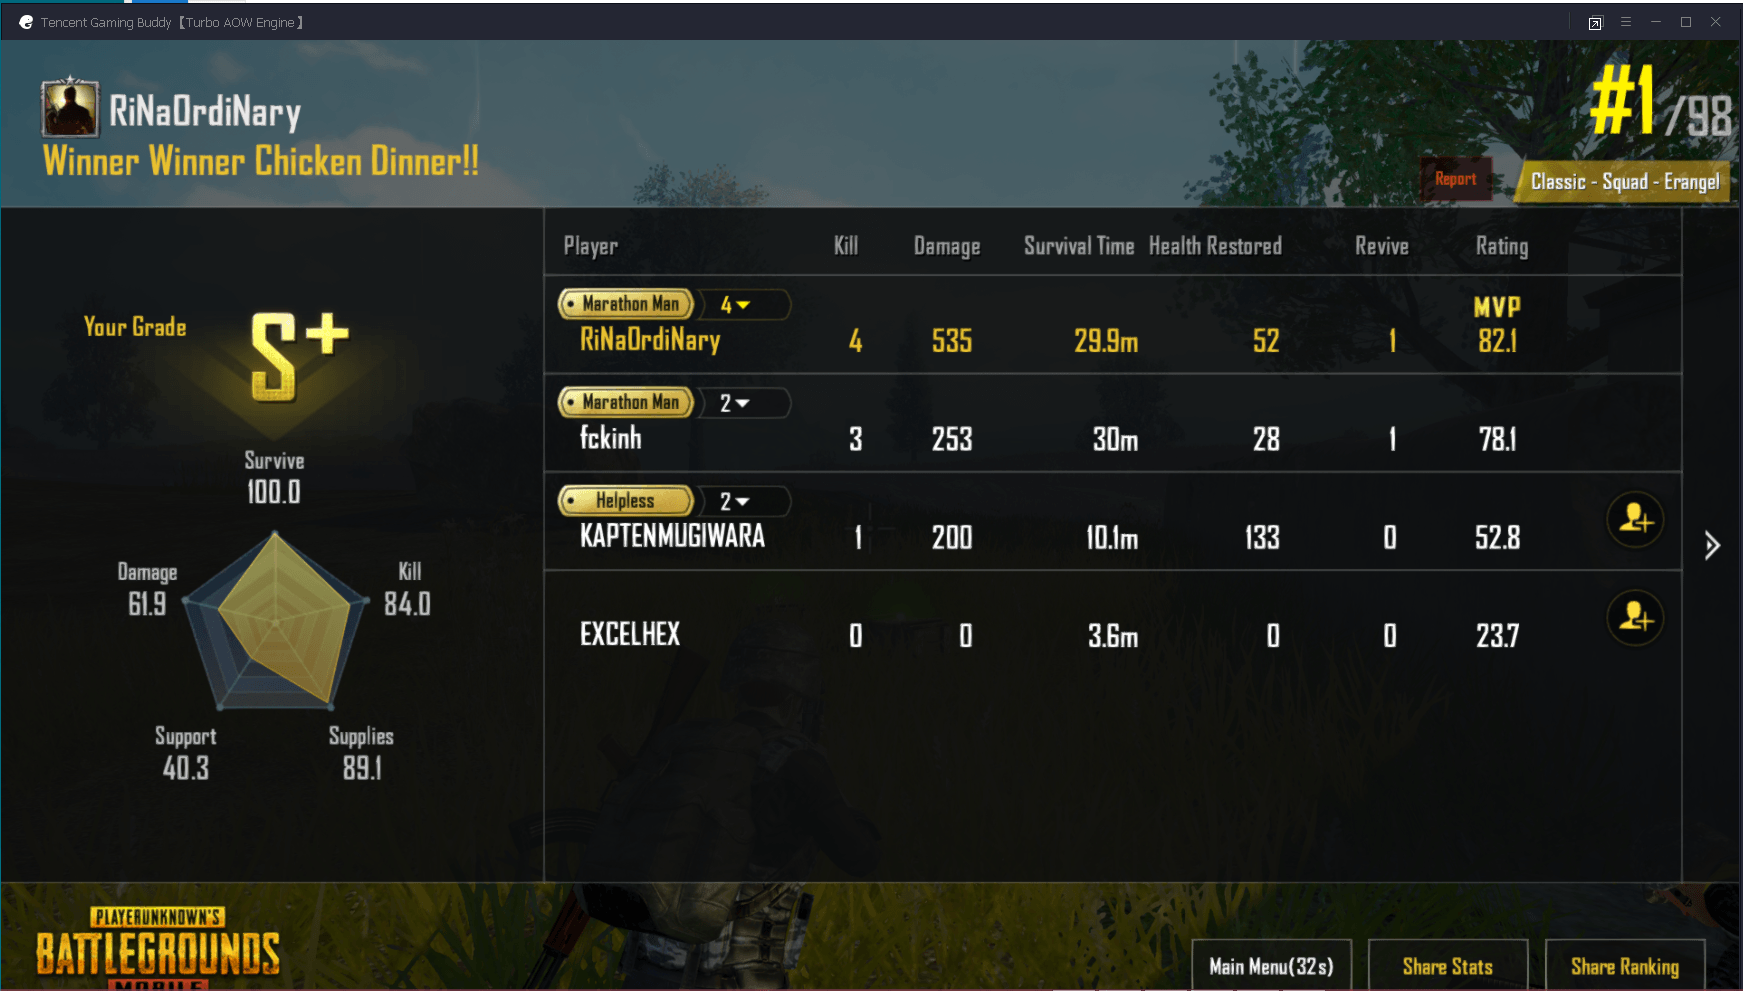 cara mudah menang PUBG mobile winner chicken dinner